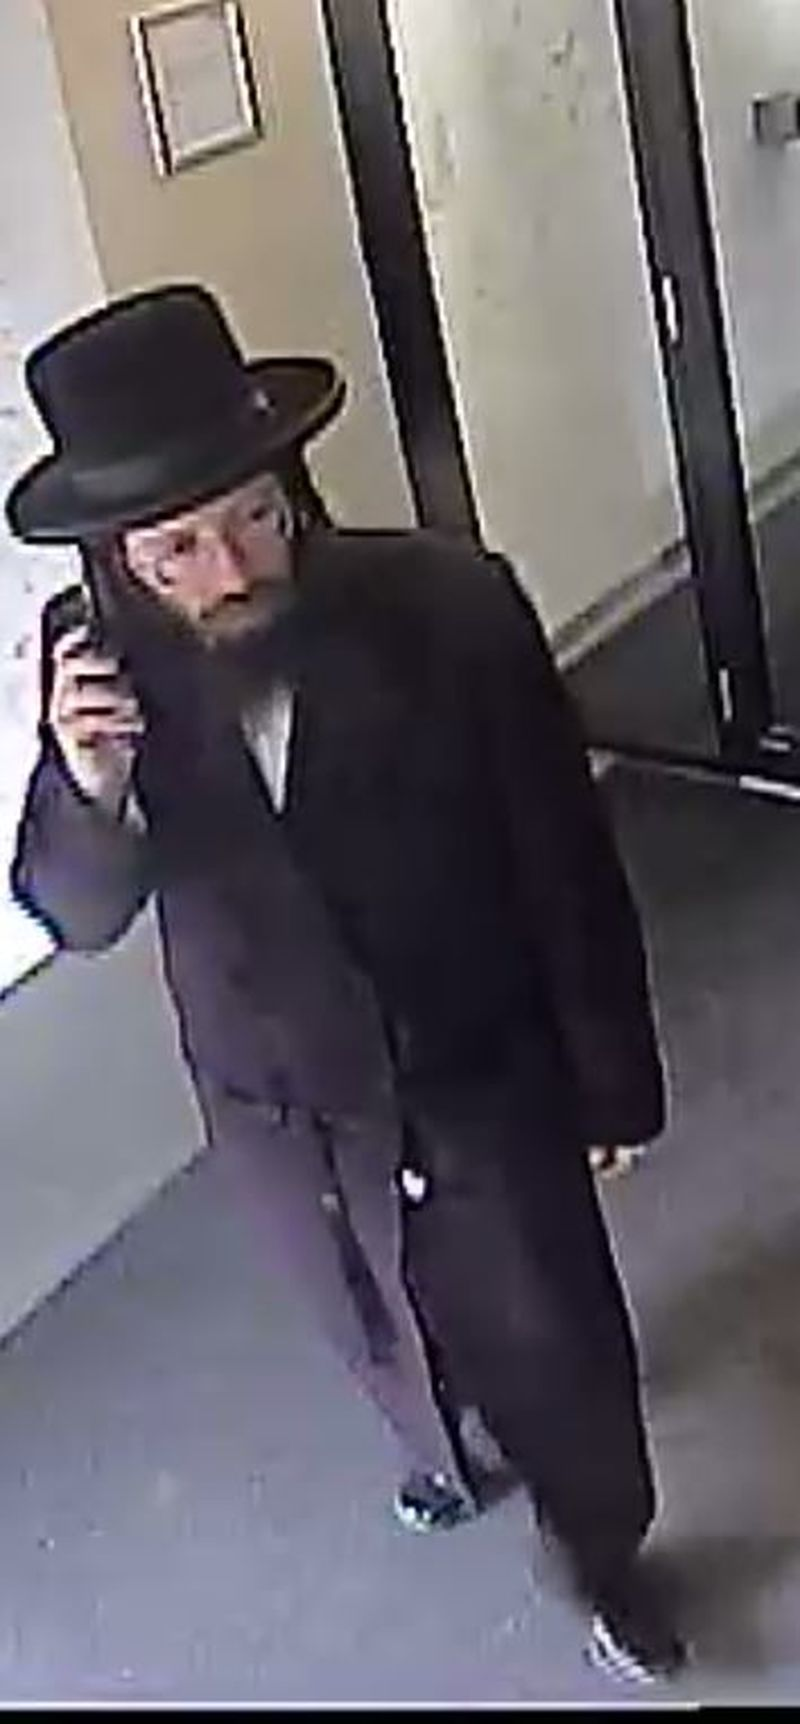 Security camera image of man in Sexual Assault investigation